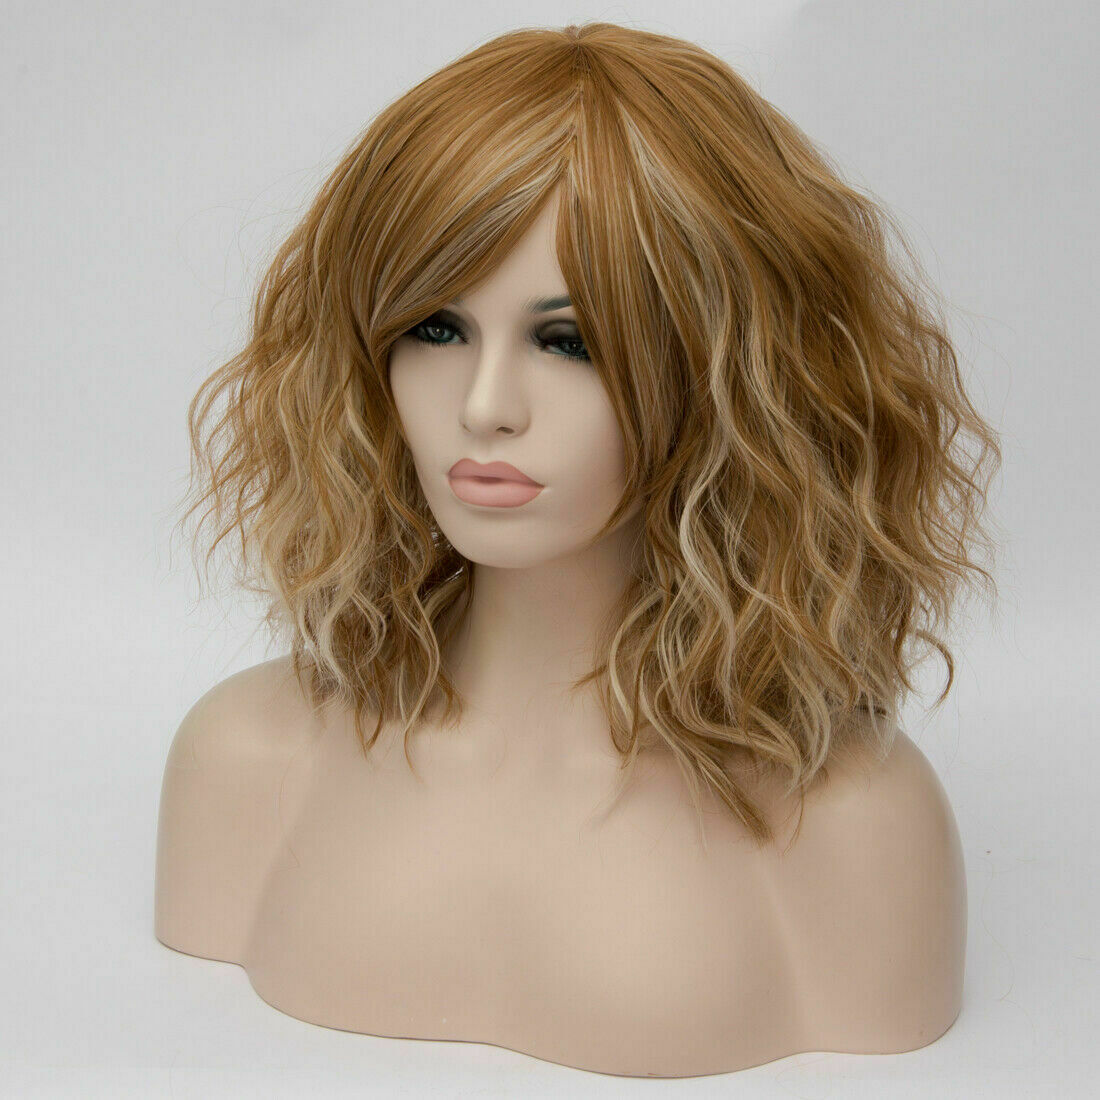 Lolita-Women-039-s-Short-Curly-Anime-Synthetic-Hair-Heat-Resistant-Cosplay-Party-Wig miniature 91